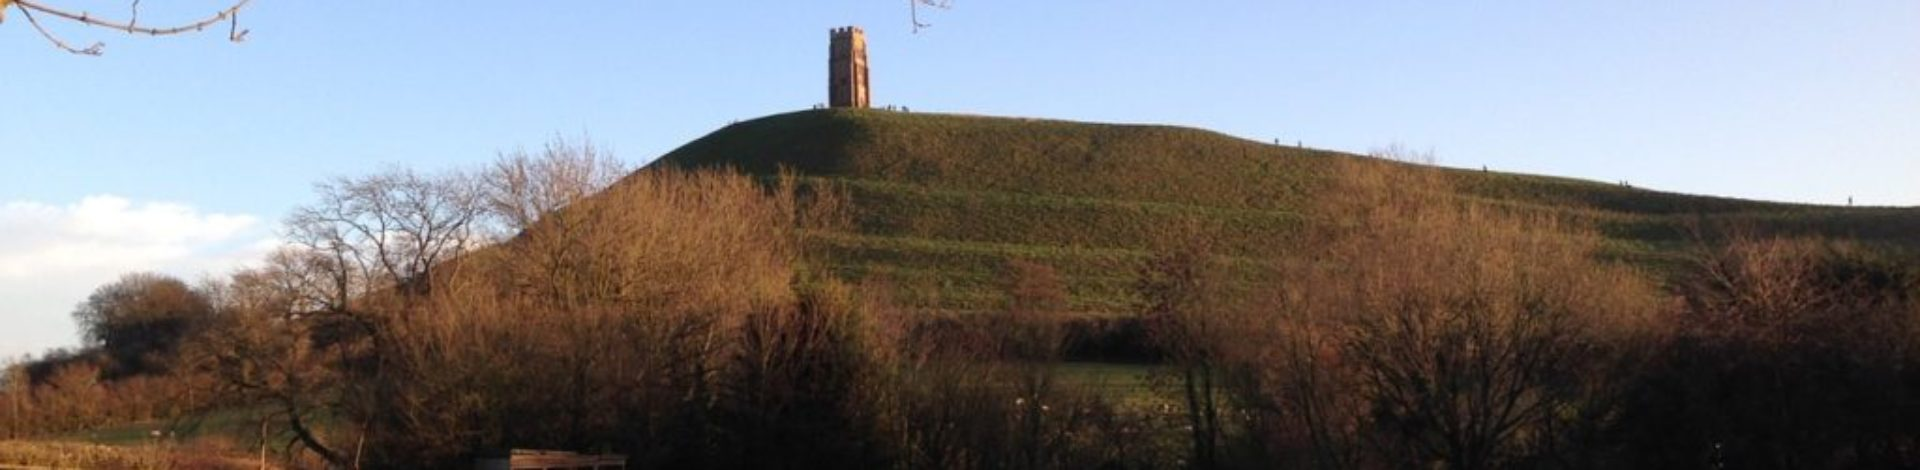 glastonbury-tor-1235484_1280